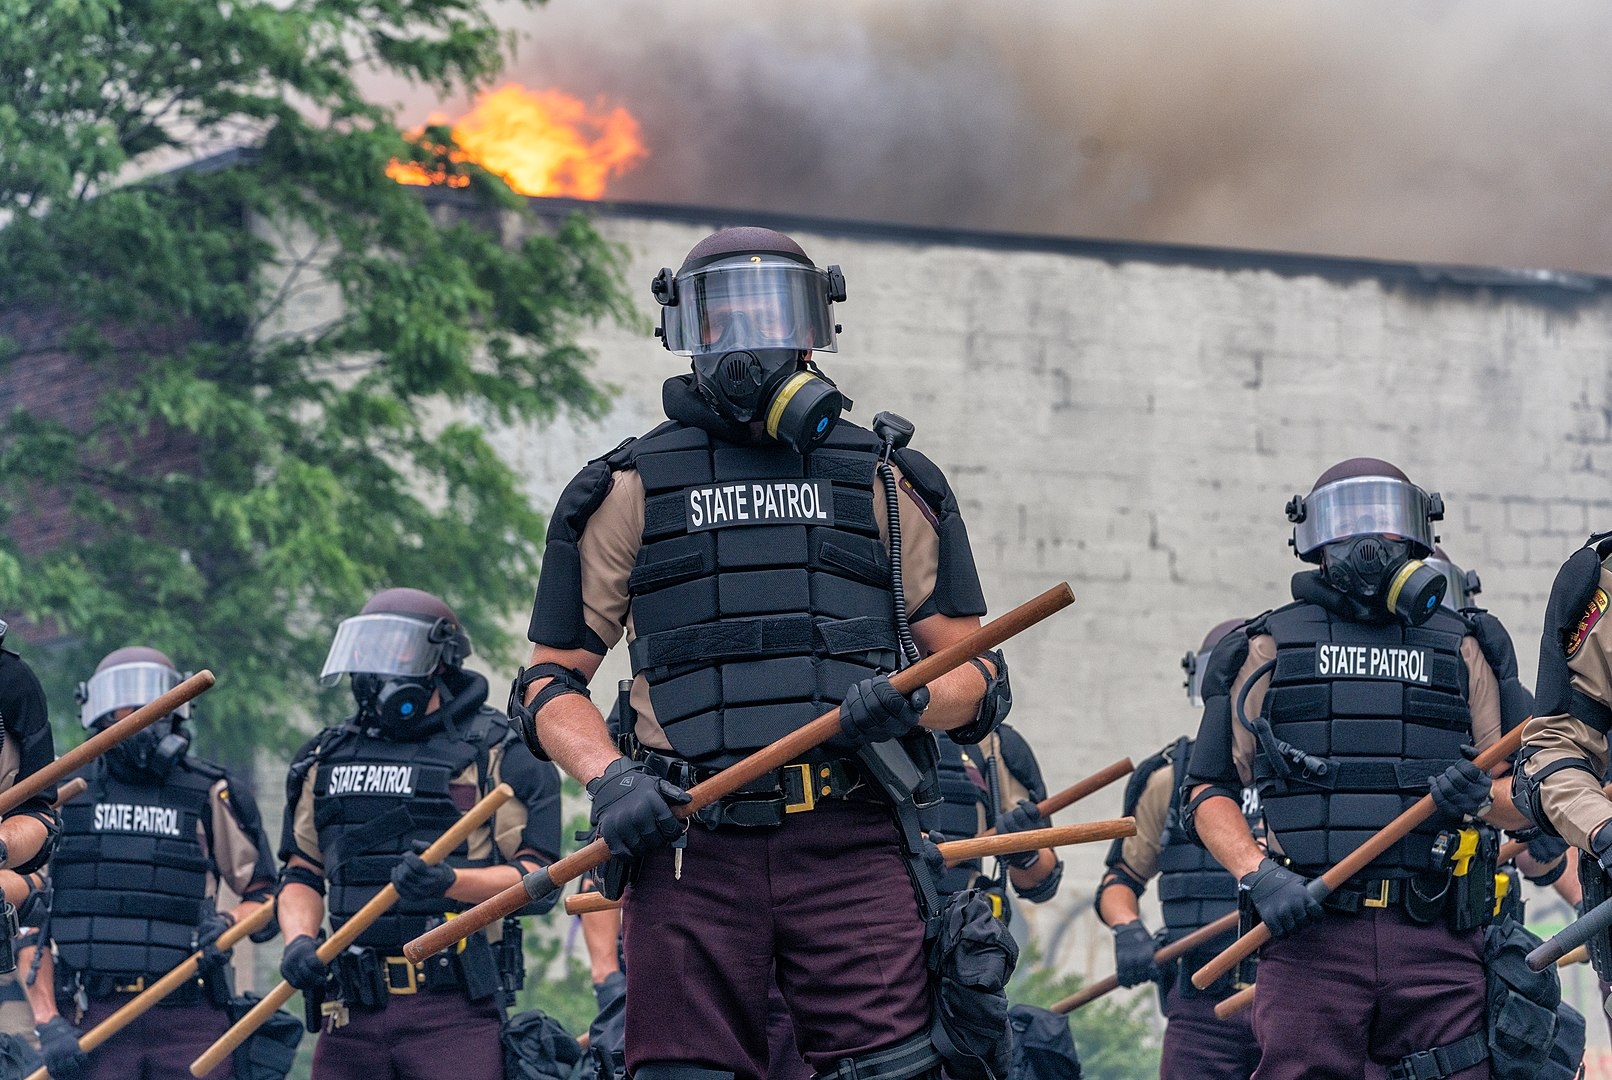 Minnesota State patrol troopers stand in formation, wearing riot gear and holding wooden batons during protests following the killing of George Floyd in Minneapolis, May 29, 2020. (Tony Webster/Flickr)